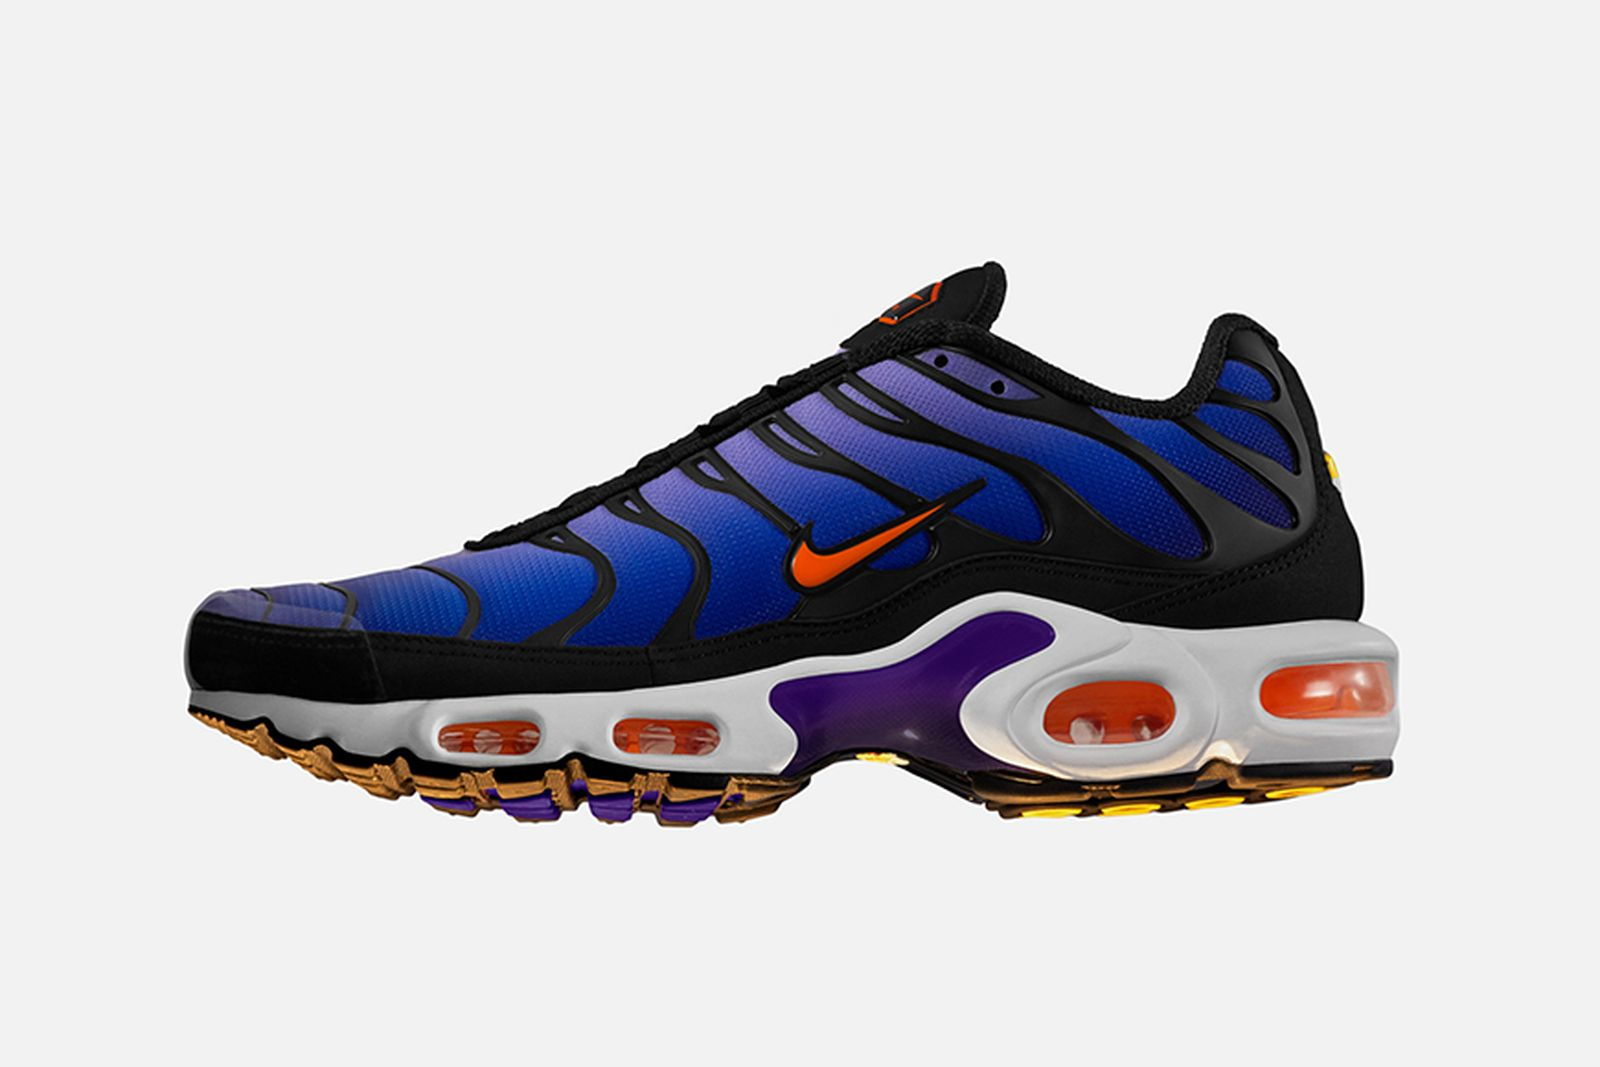 Nike Air Max Plus: Official Release Information & Design Story